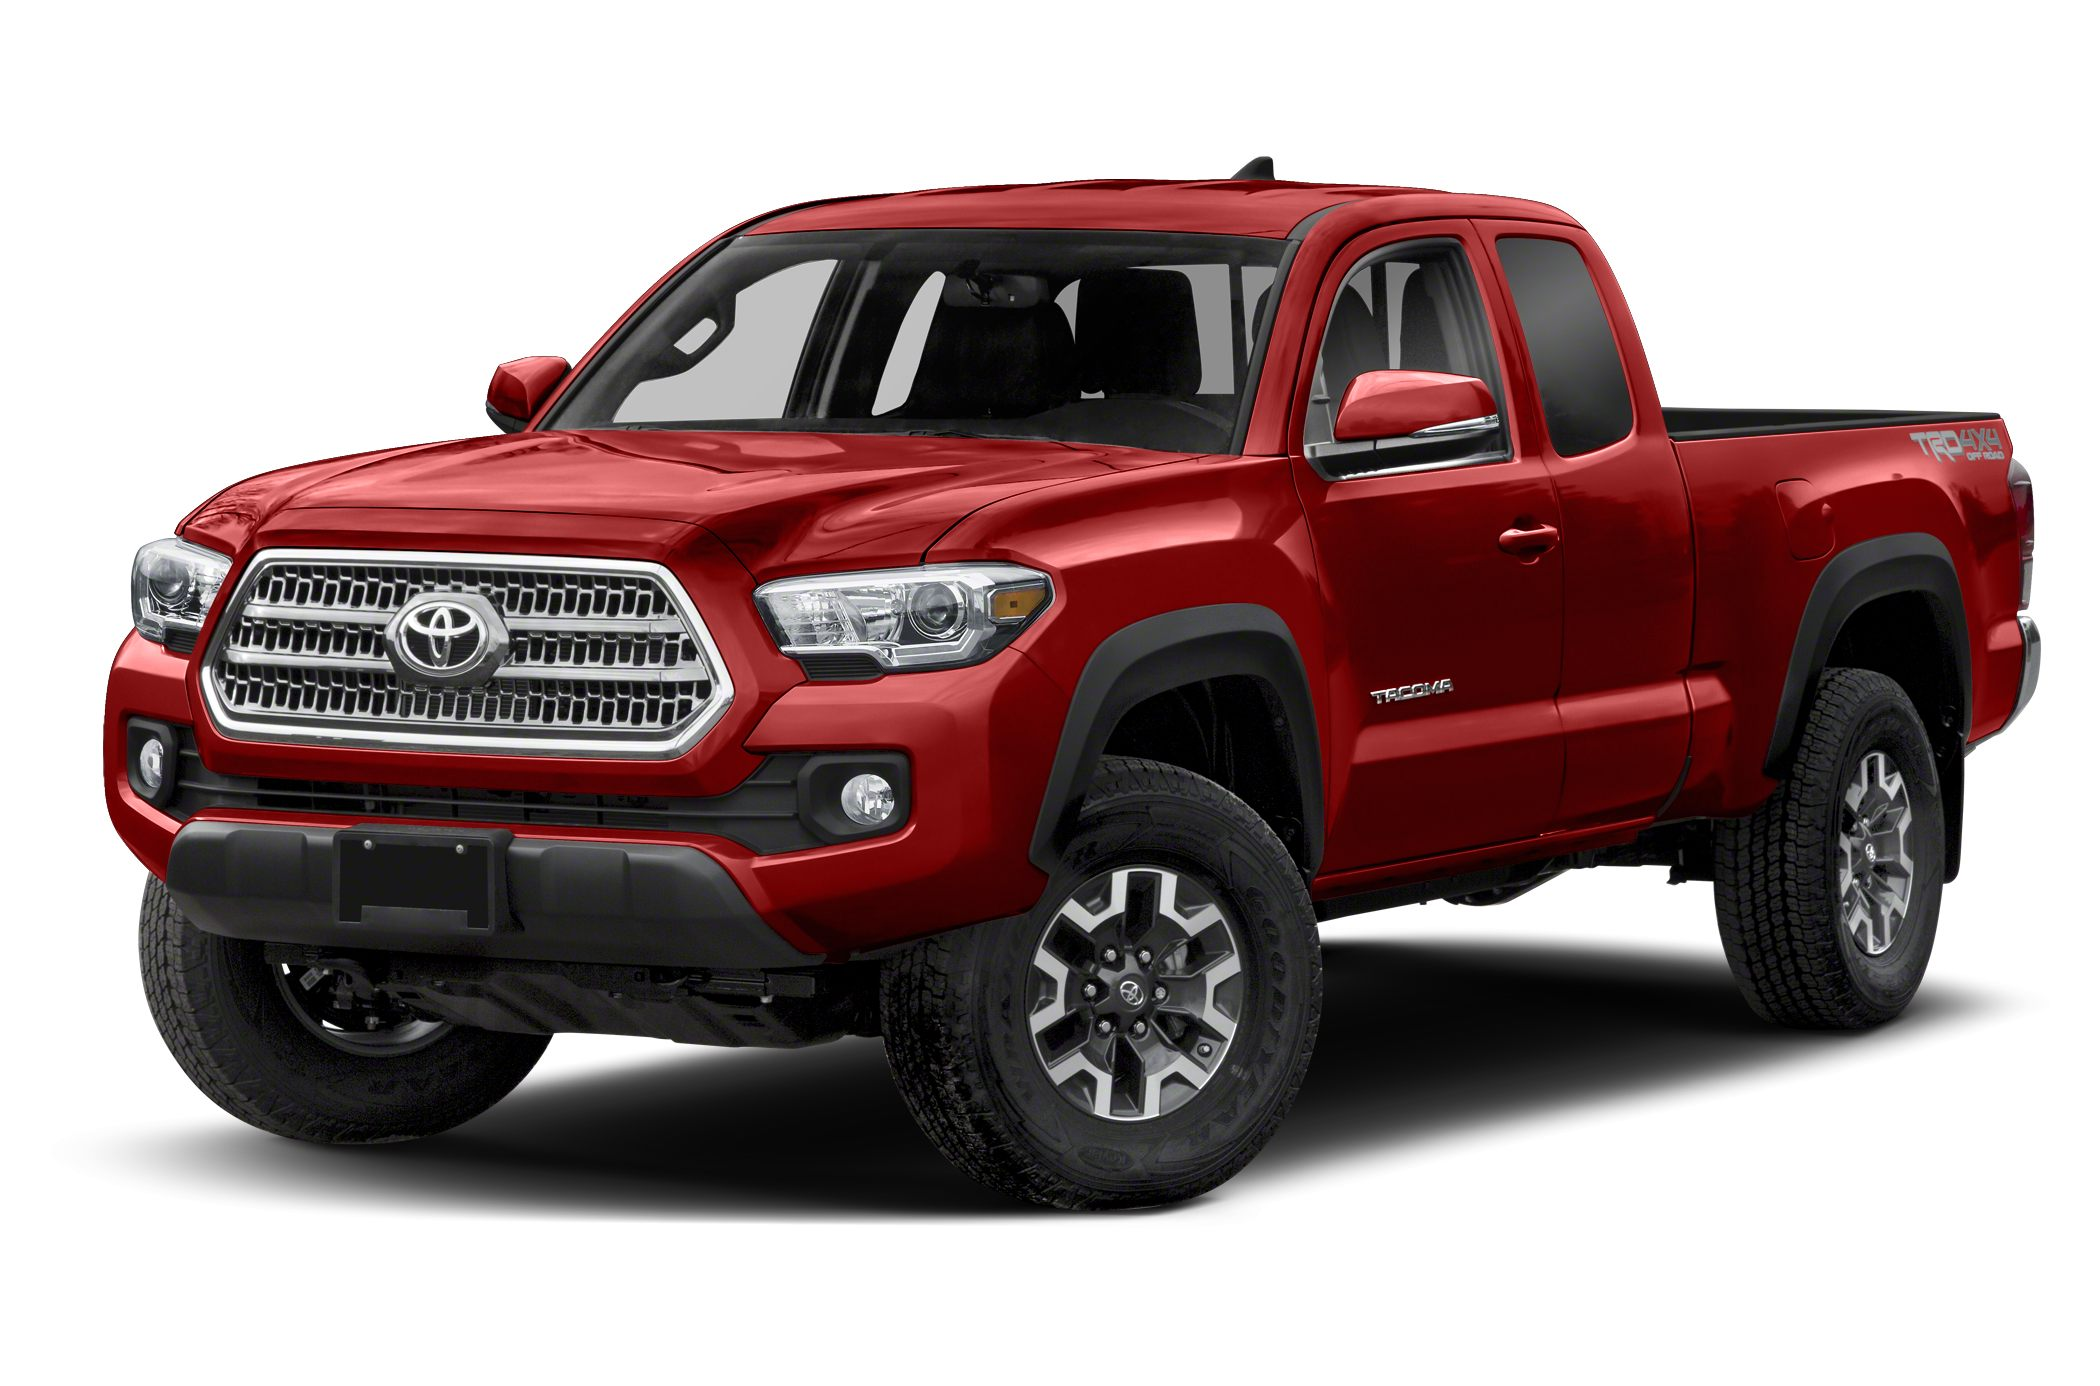 2017 Toyota Tacoma Trd Off Road V6 4x4 Access Cab 127 4 In Wb Specs And Prices